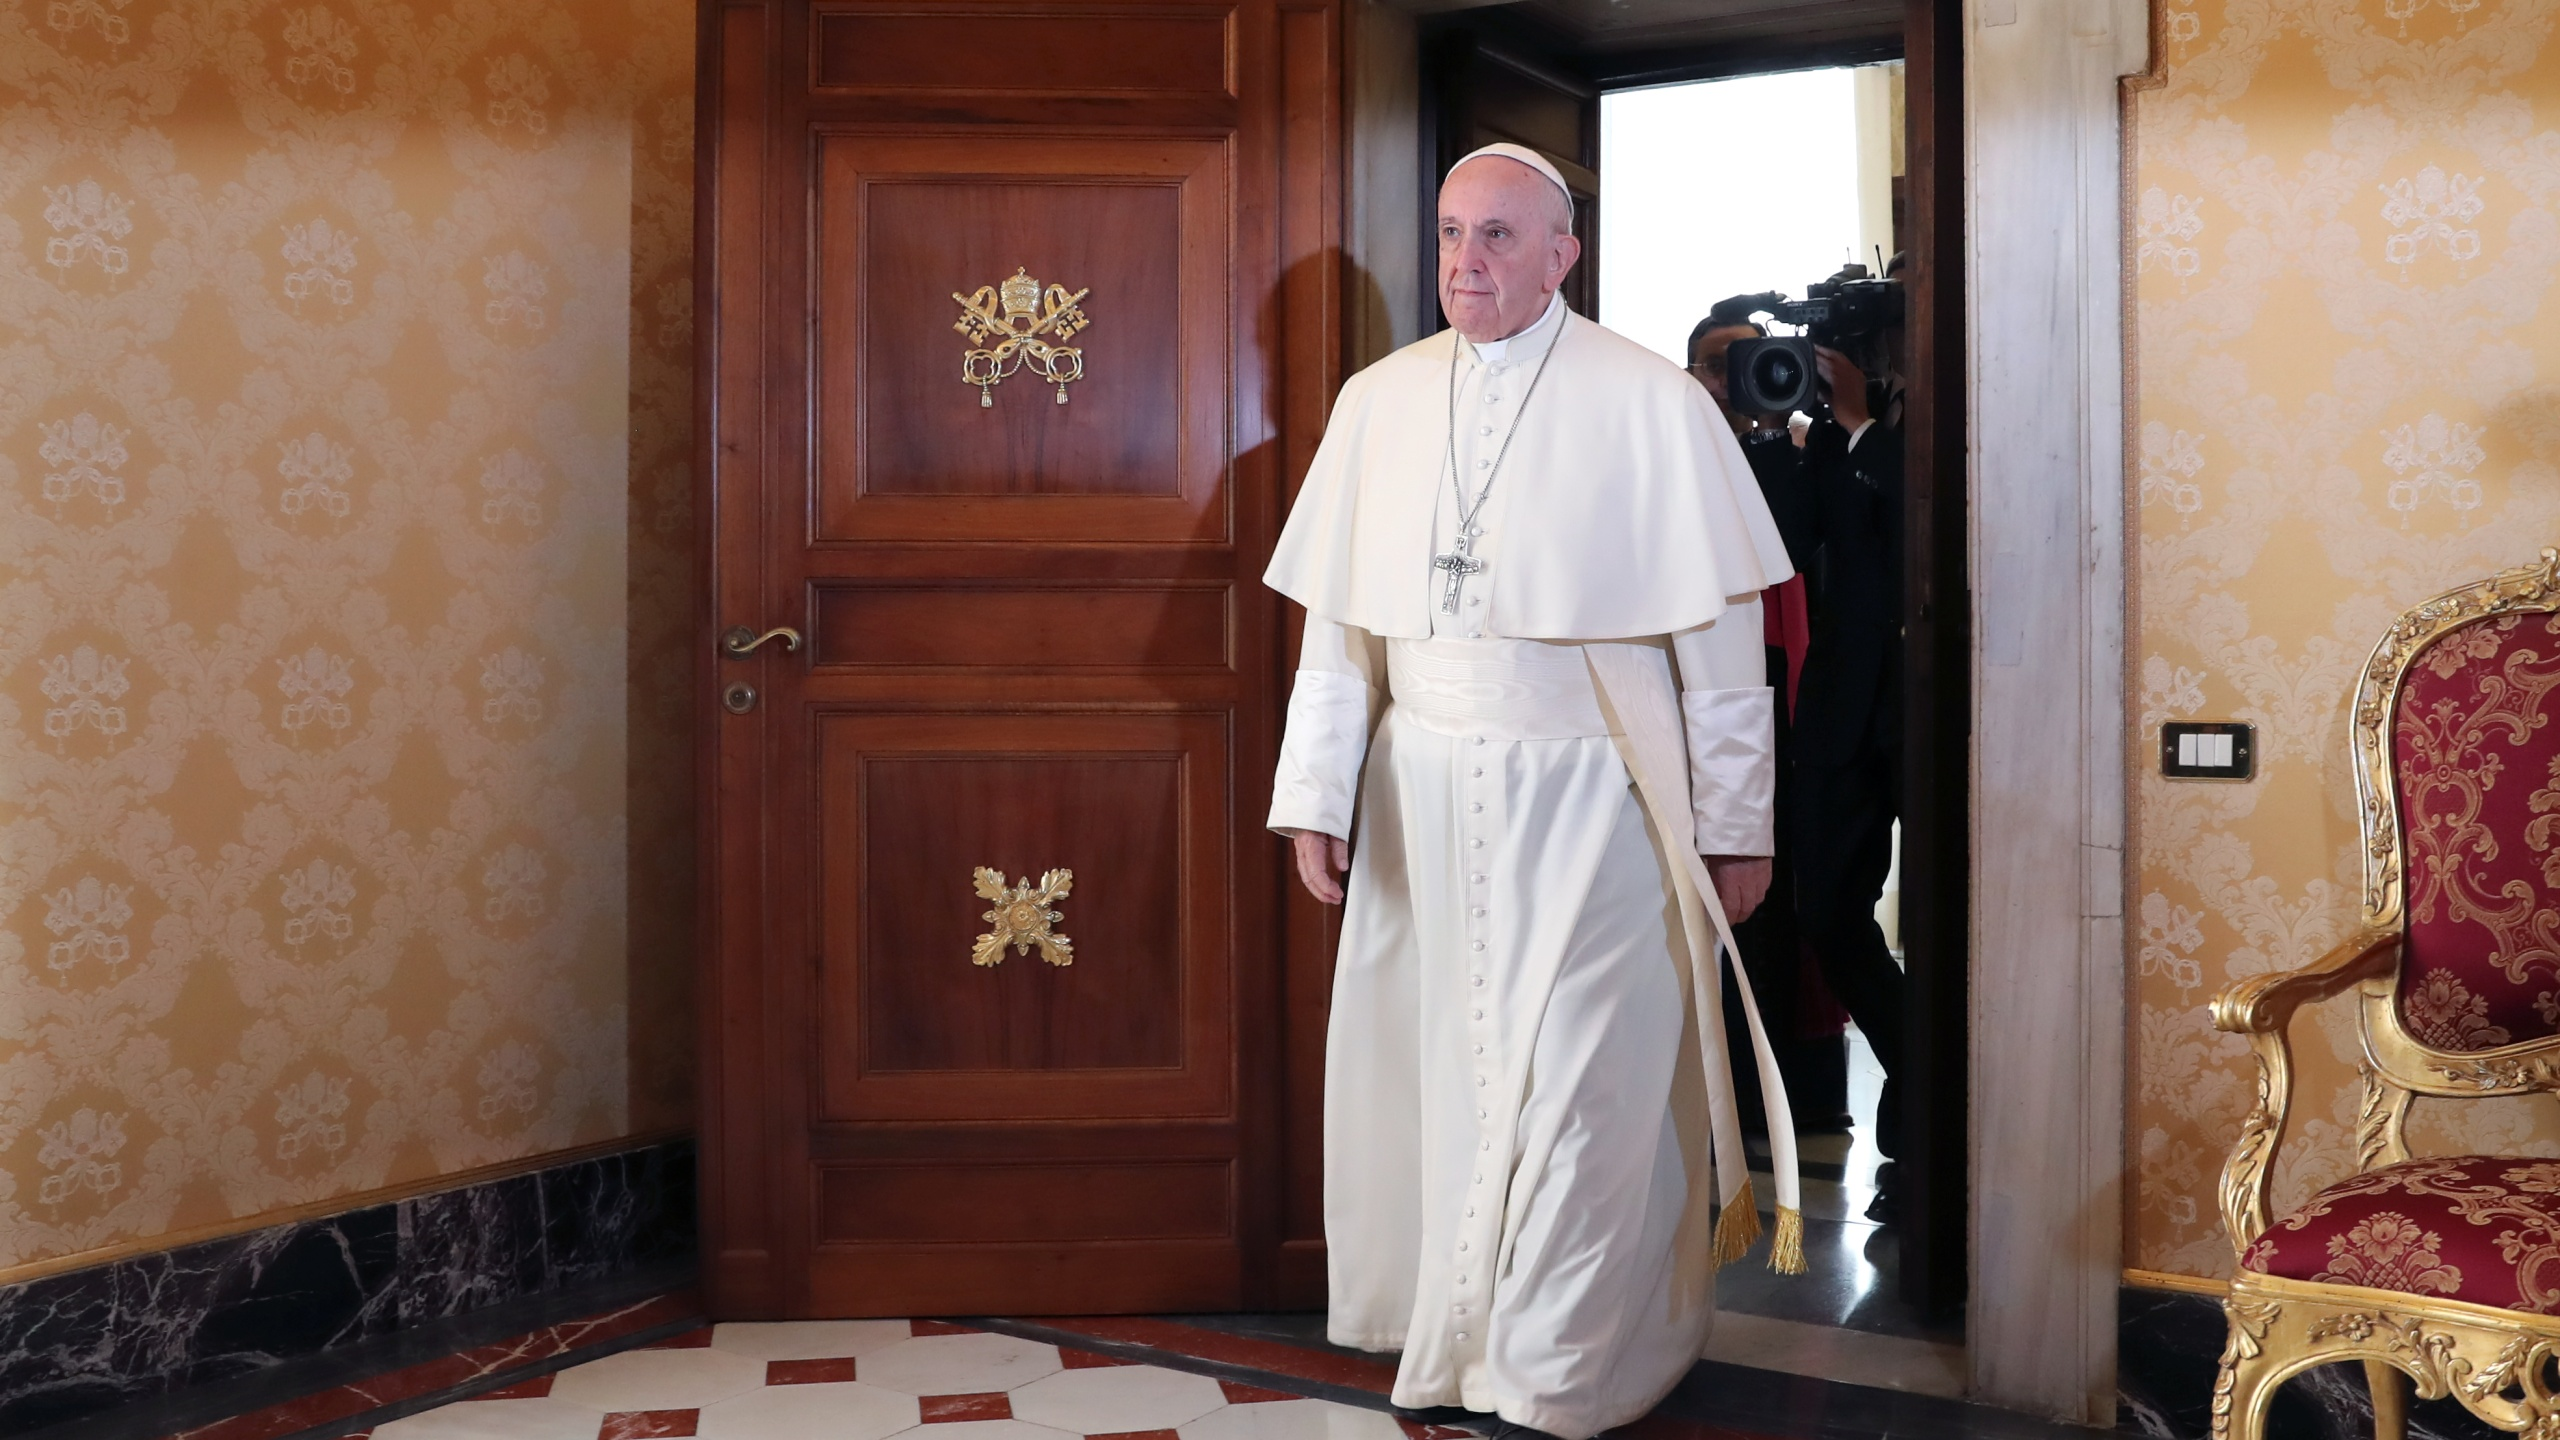 Pope Francis arrives for a private audience with Colombia's President at the Vatican on October 22, 2018. (Credit: TONY GENTILE/AFP/Getty Images)